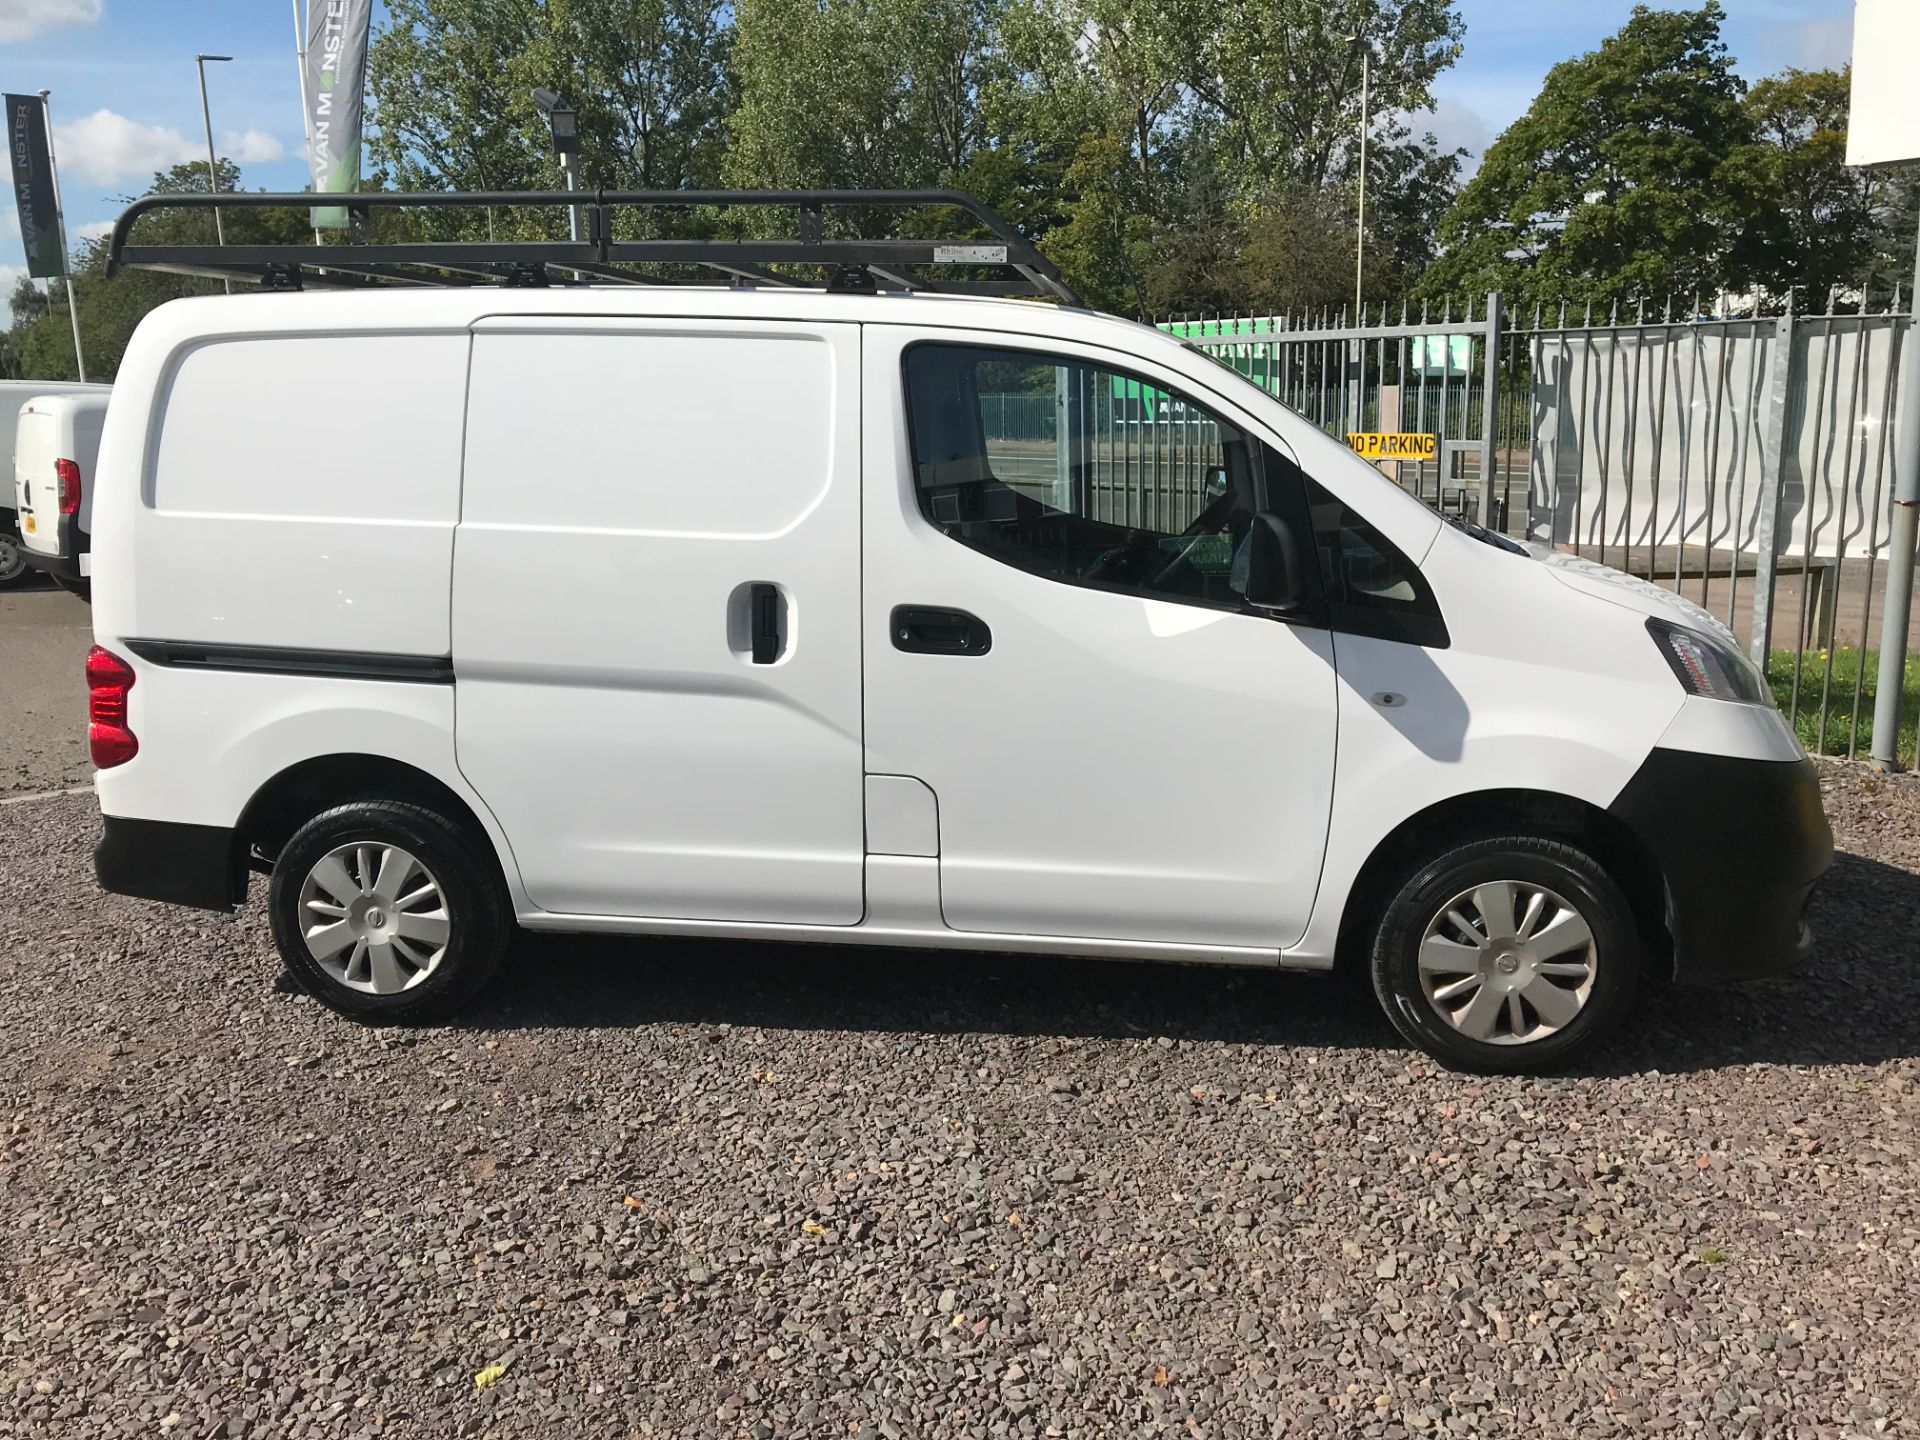 2016 Nissan Nv200 1.5 DCI ACCENTA EURO 5 (DL16HNM) Image 2